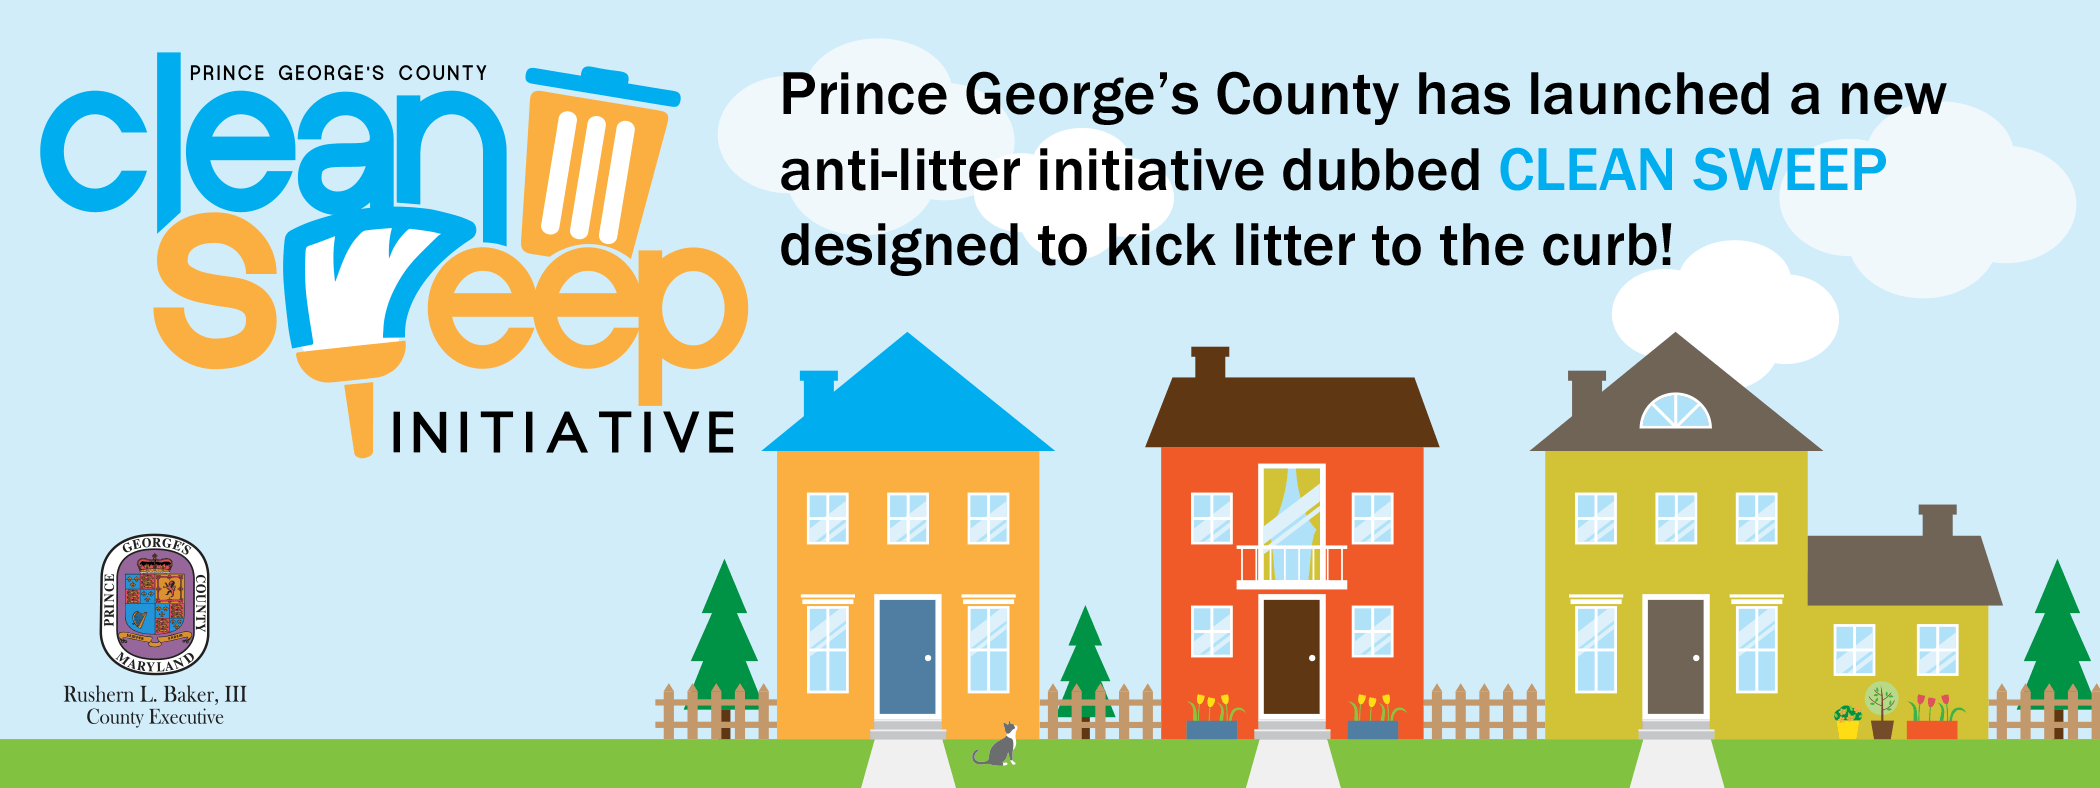 The county launched Clean Sweep, a new anti-litter initiative designed to kick litter to the curb